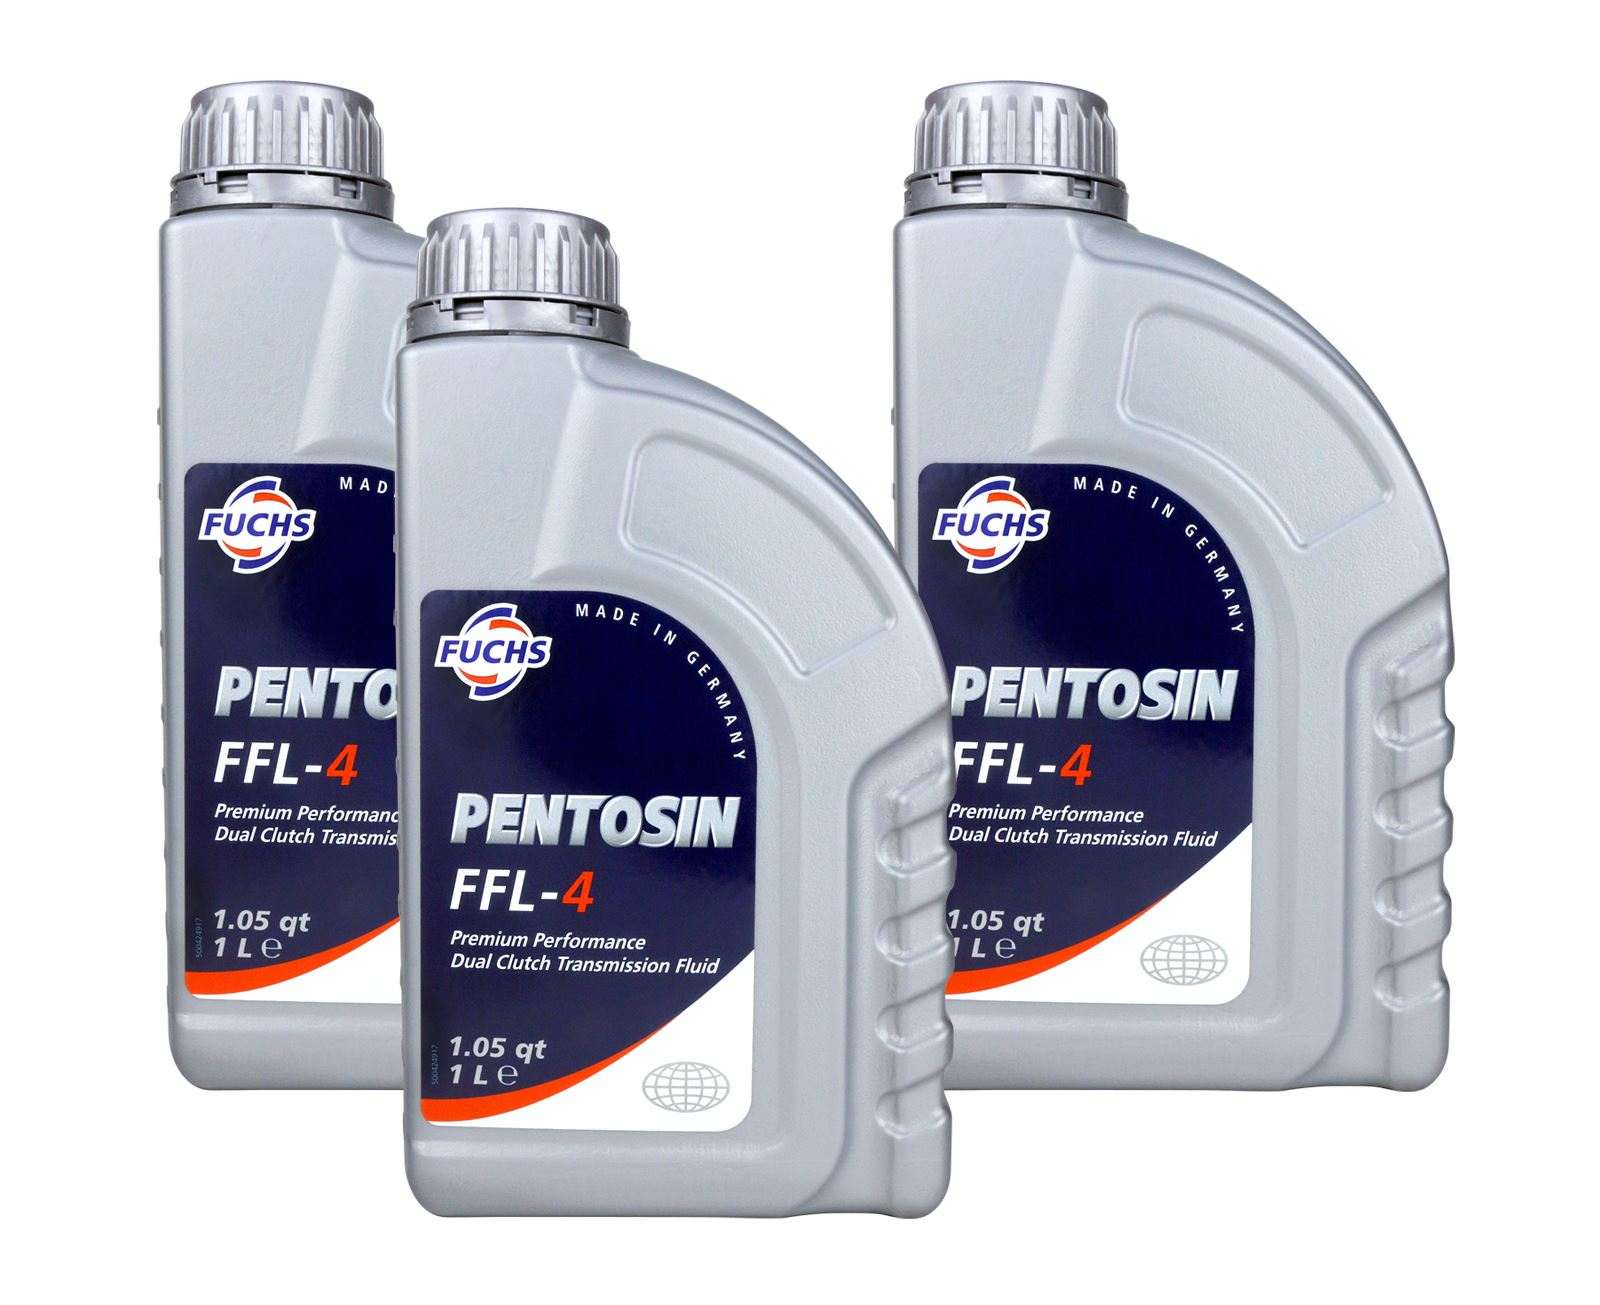 pentosin ffl 4 dct transmission fluid oil for bmw dcg. Black Bedroom Furniture Sets. Home Design Ideas